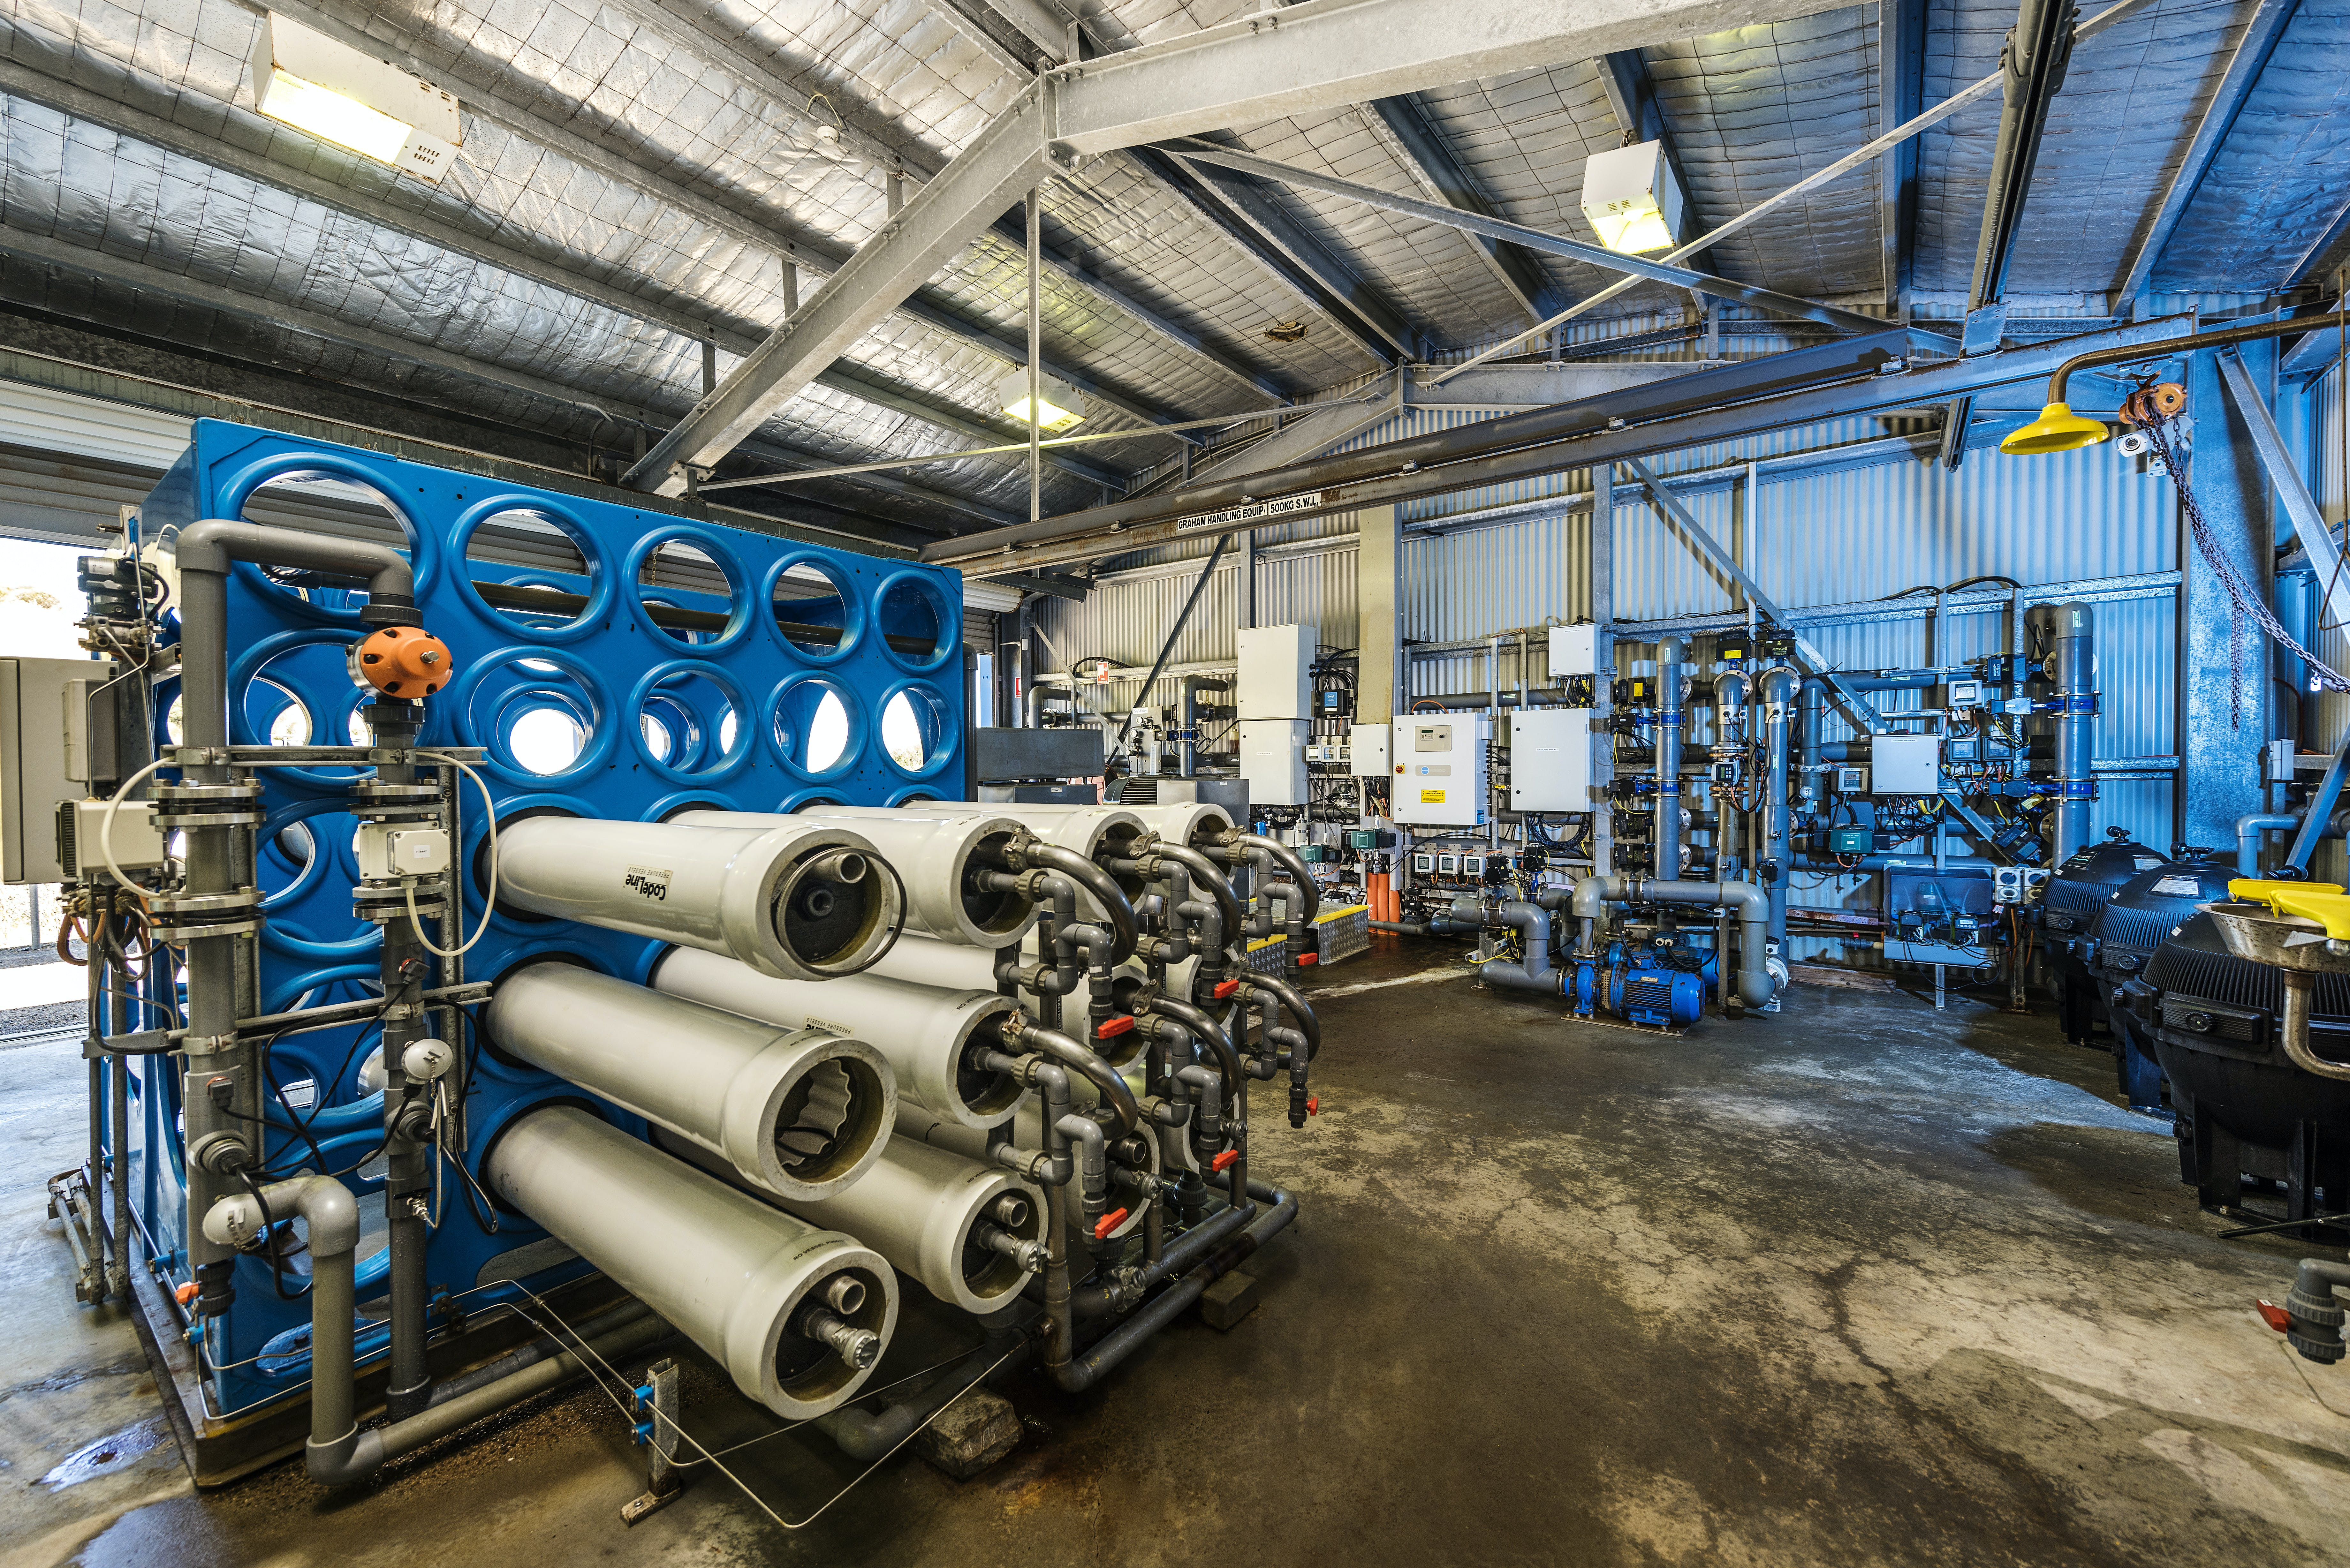 Inside the existing Penneshaw Desalination plant